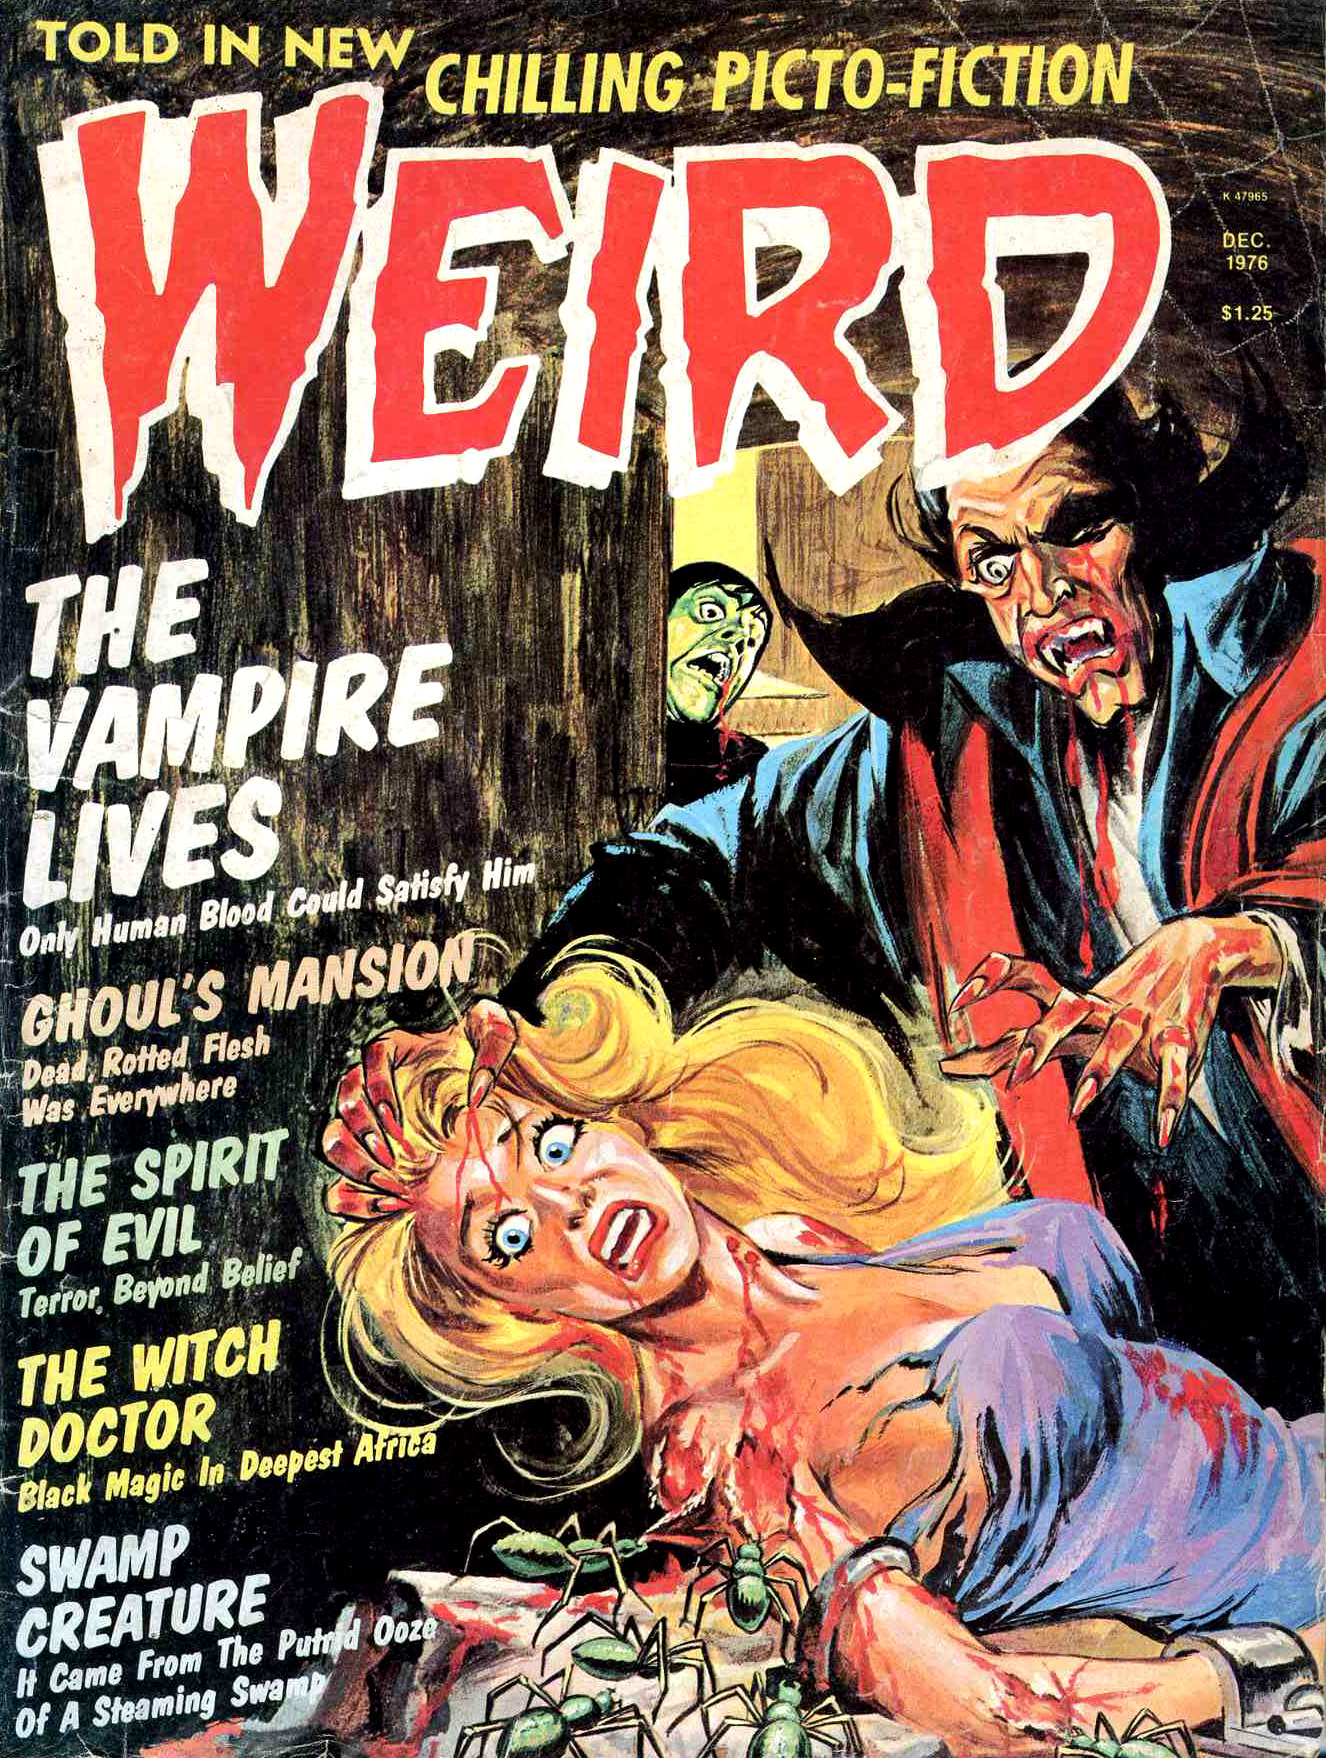 Weird Vol. 09 #4 (Eerie Publications, 1974)